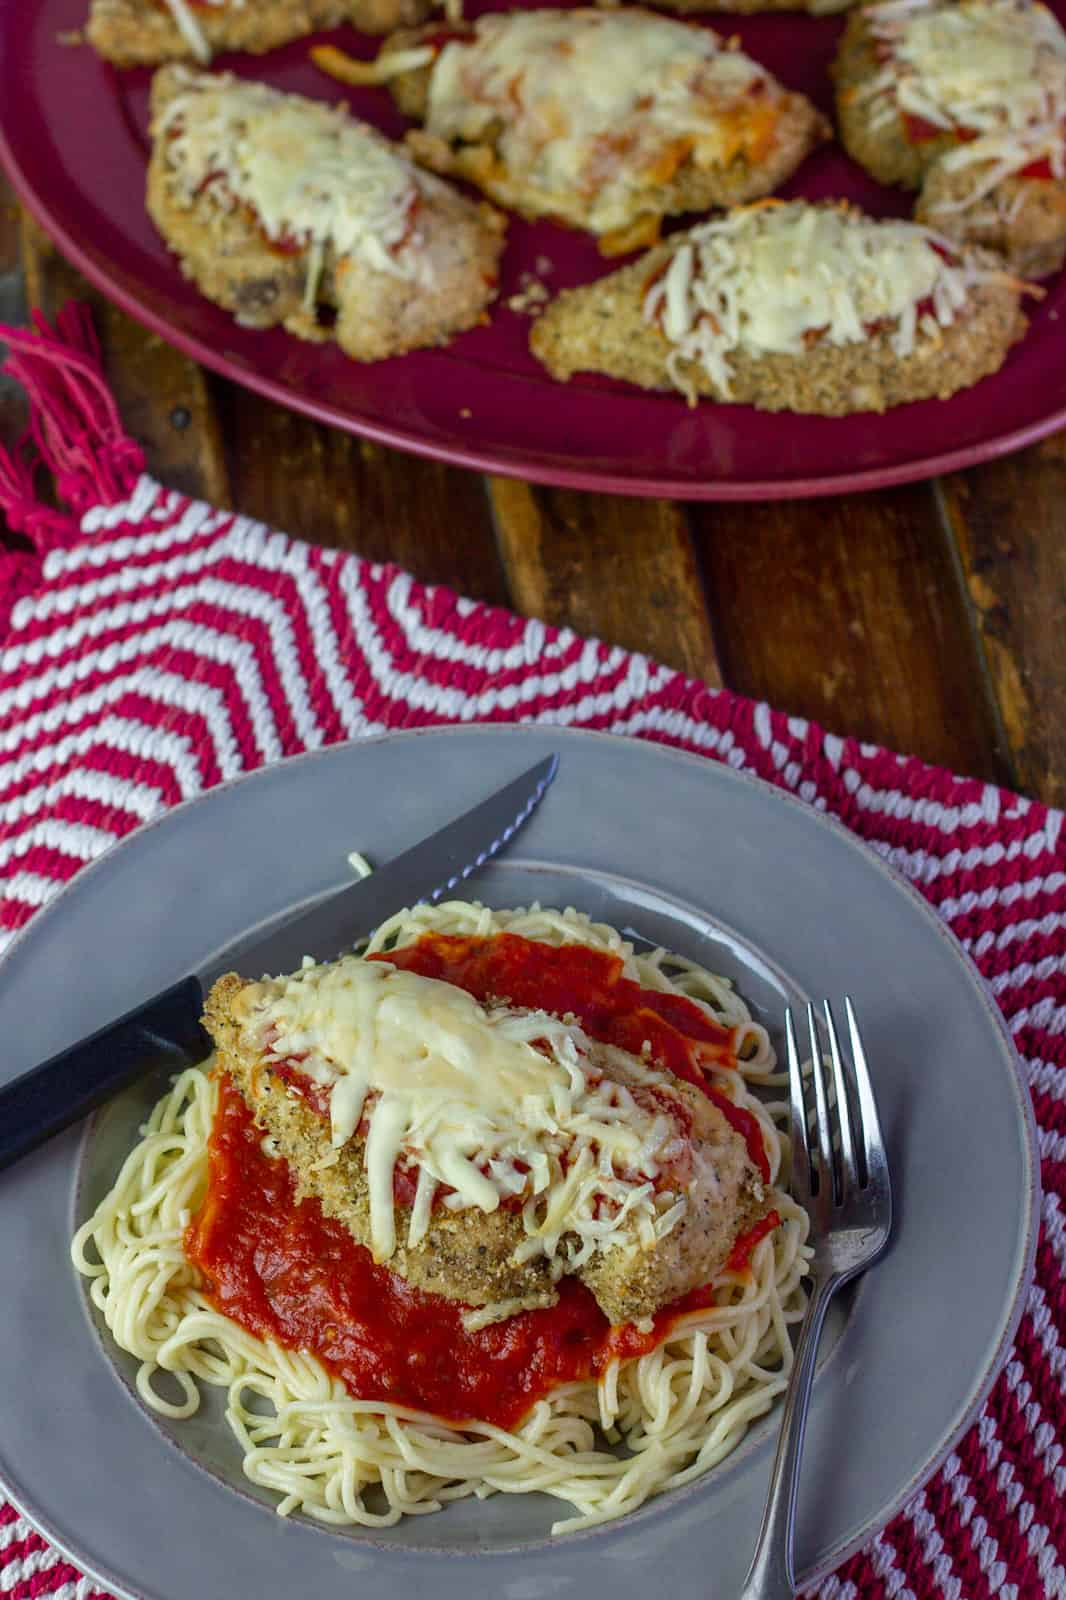 An over head picture of a plate of chicken parmesan next to a plate with more chicken.